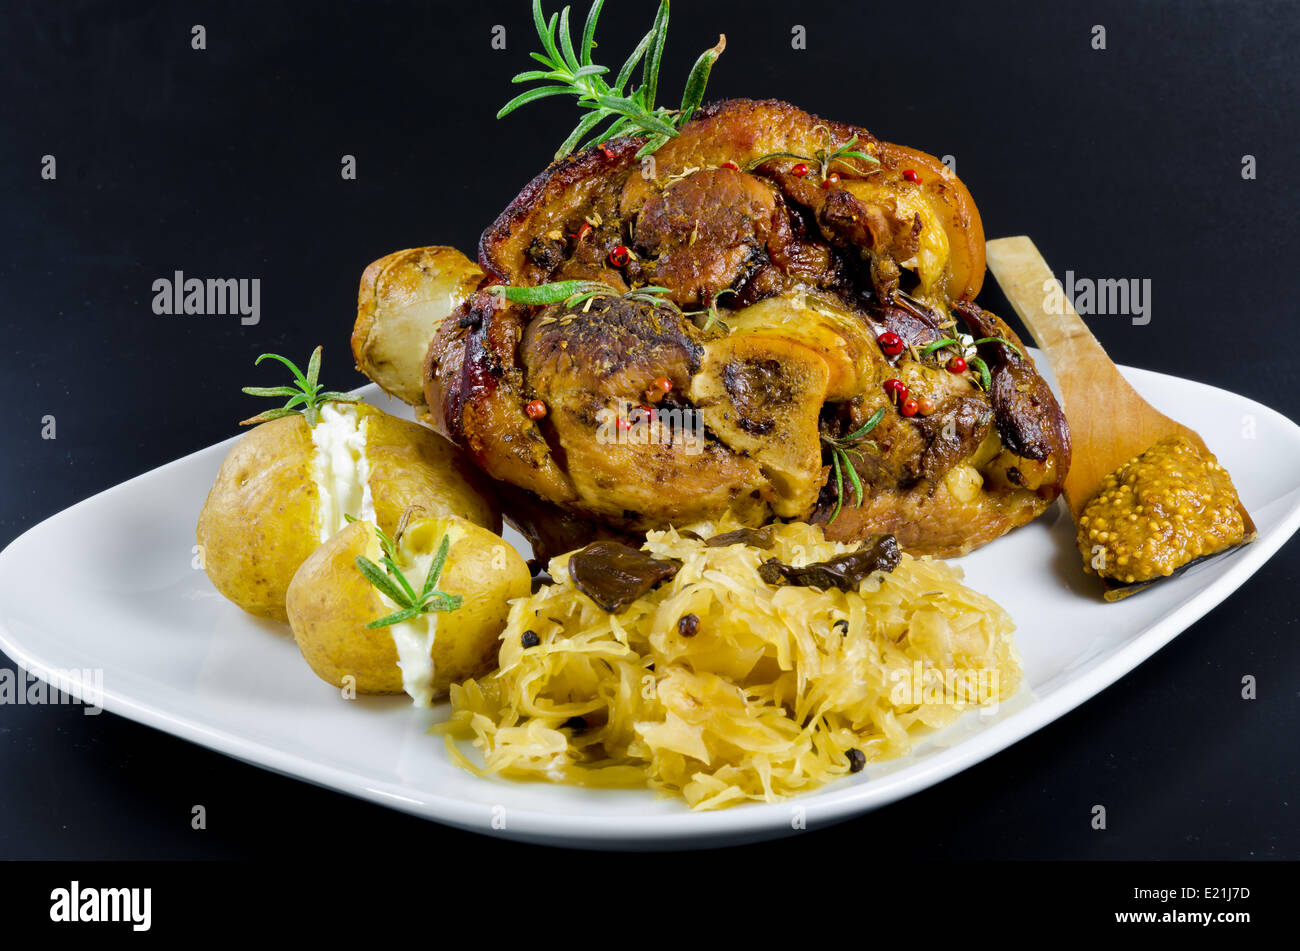 Roasted pork knuckle - Stock Image